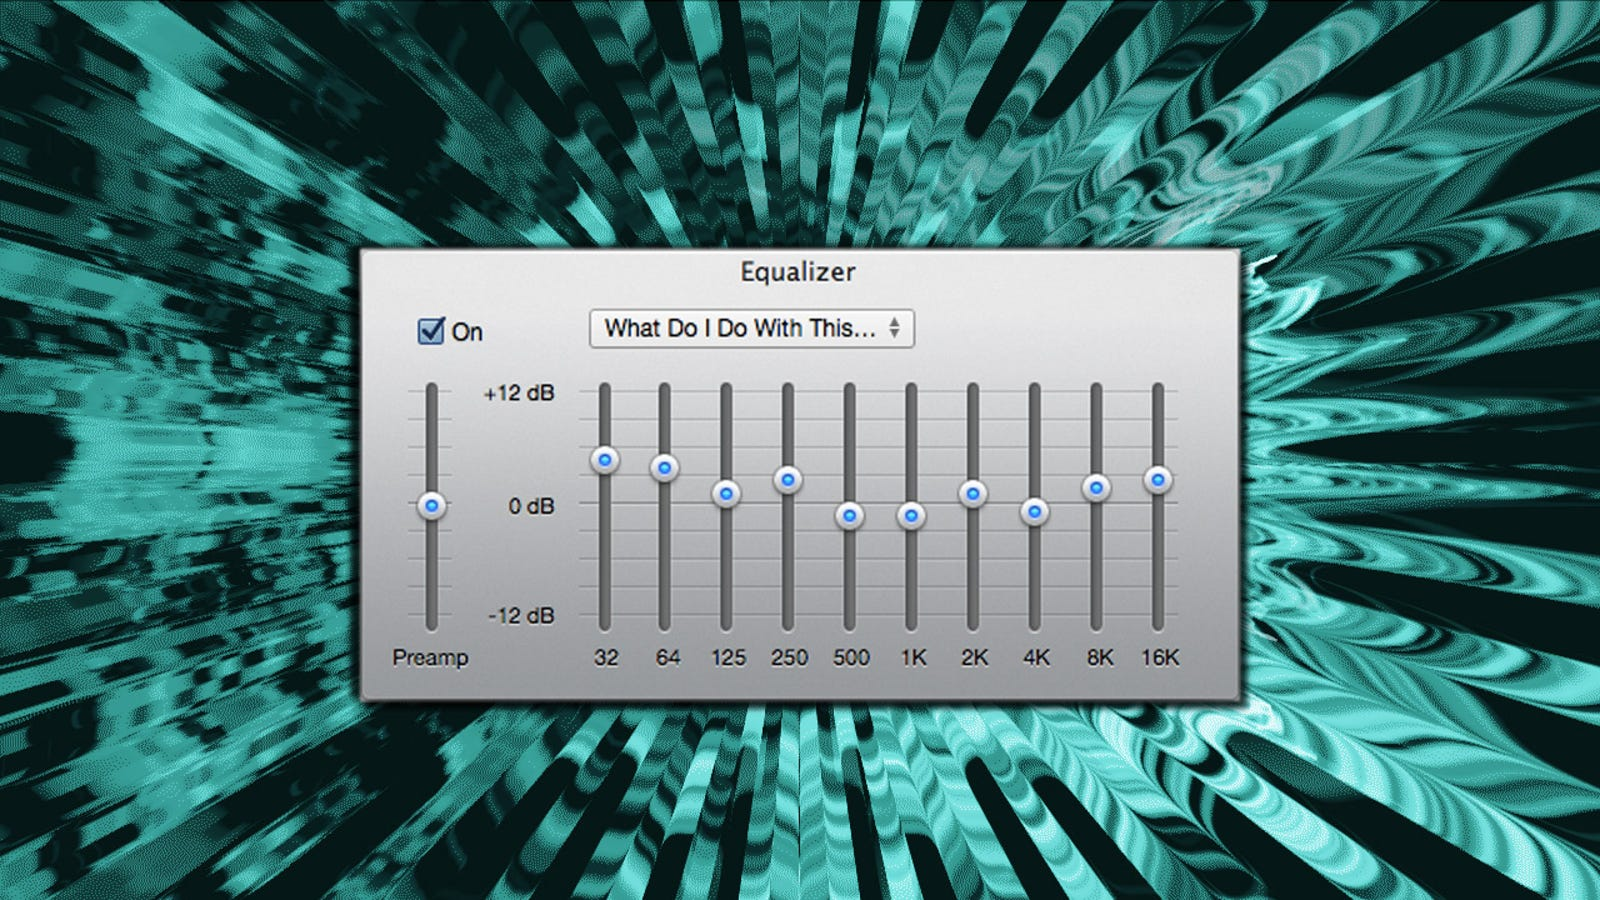 Should I Use an Equalizer When I Listen to Music?